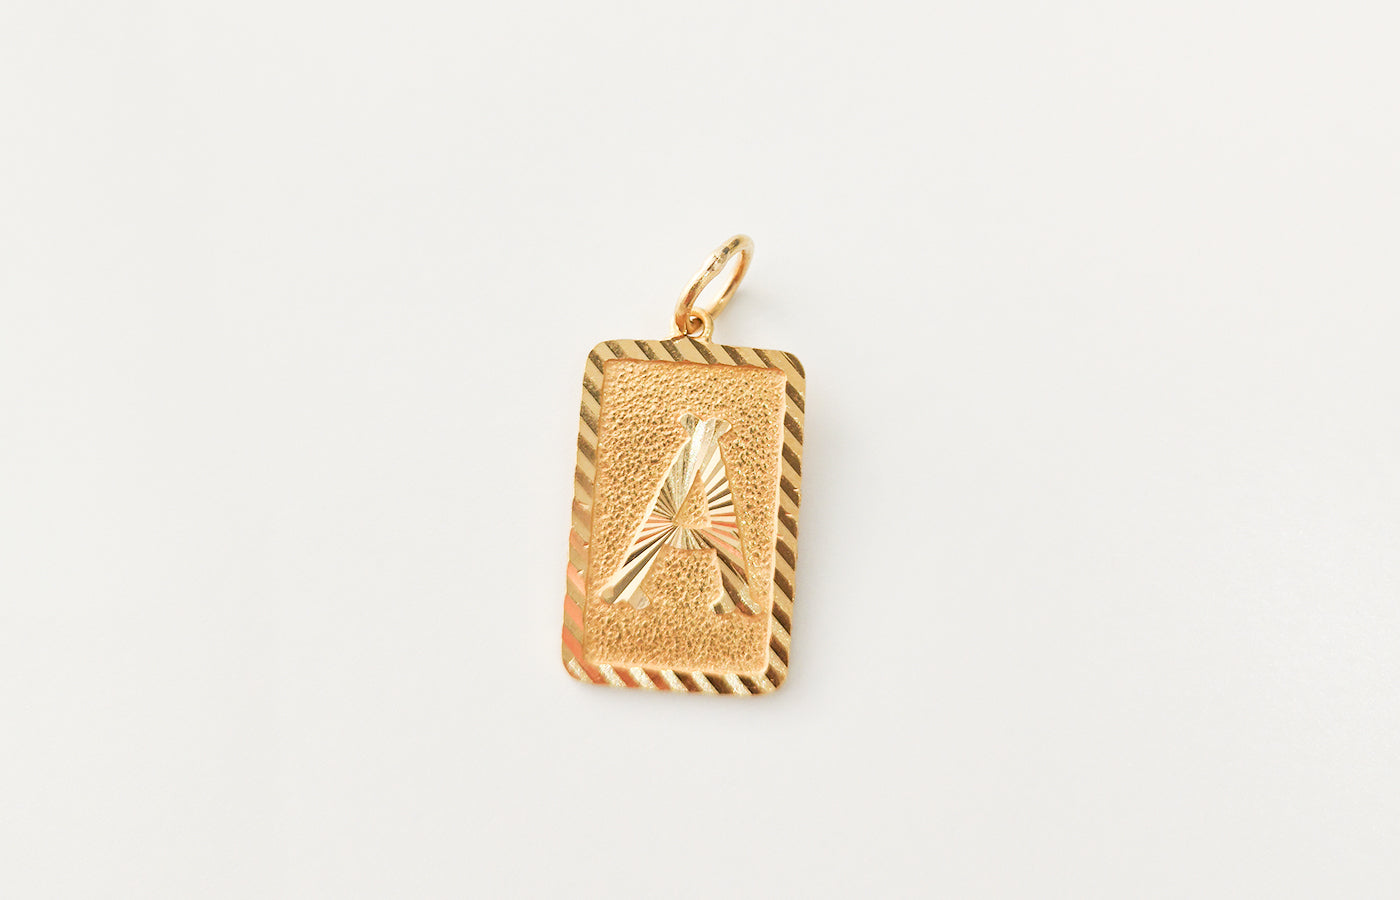 'A' Initial Pendant 22ct Gold P-7511